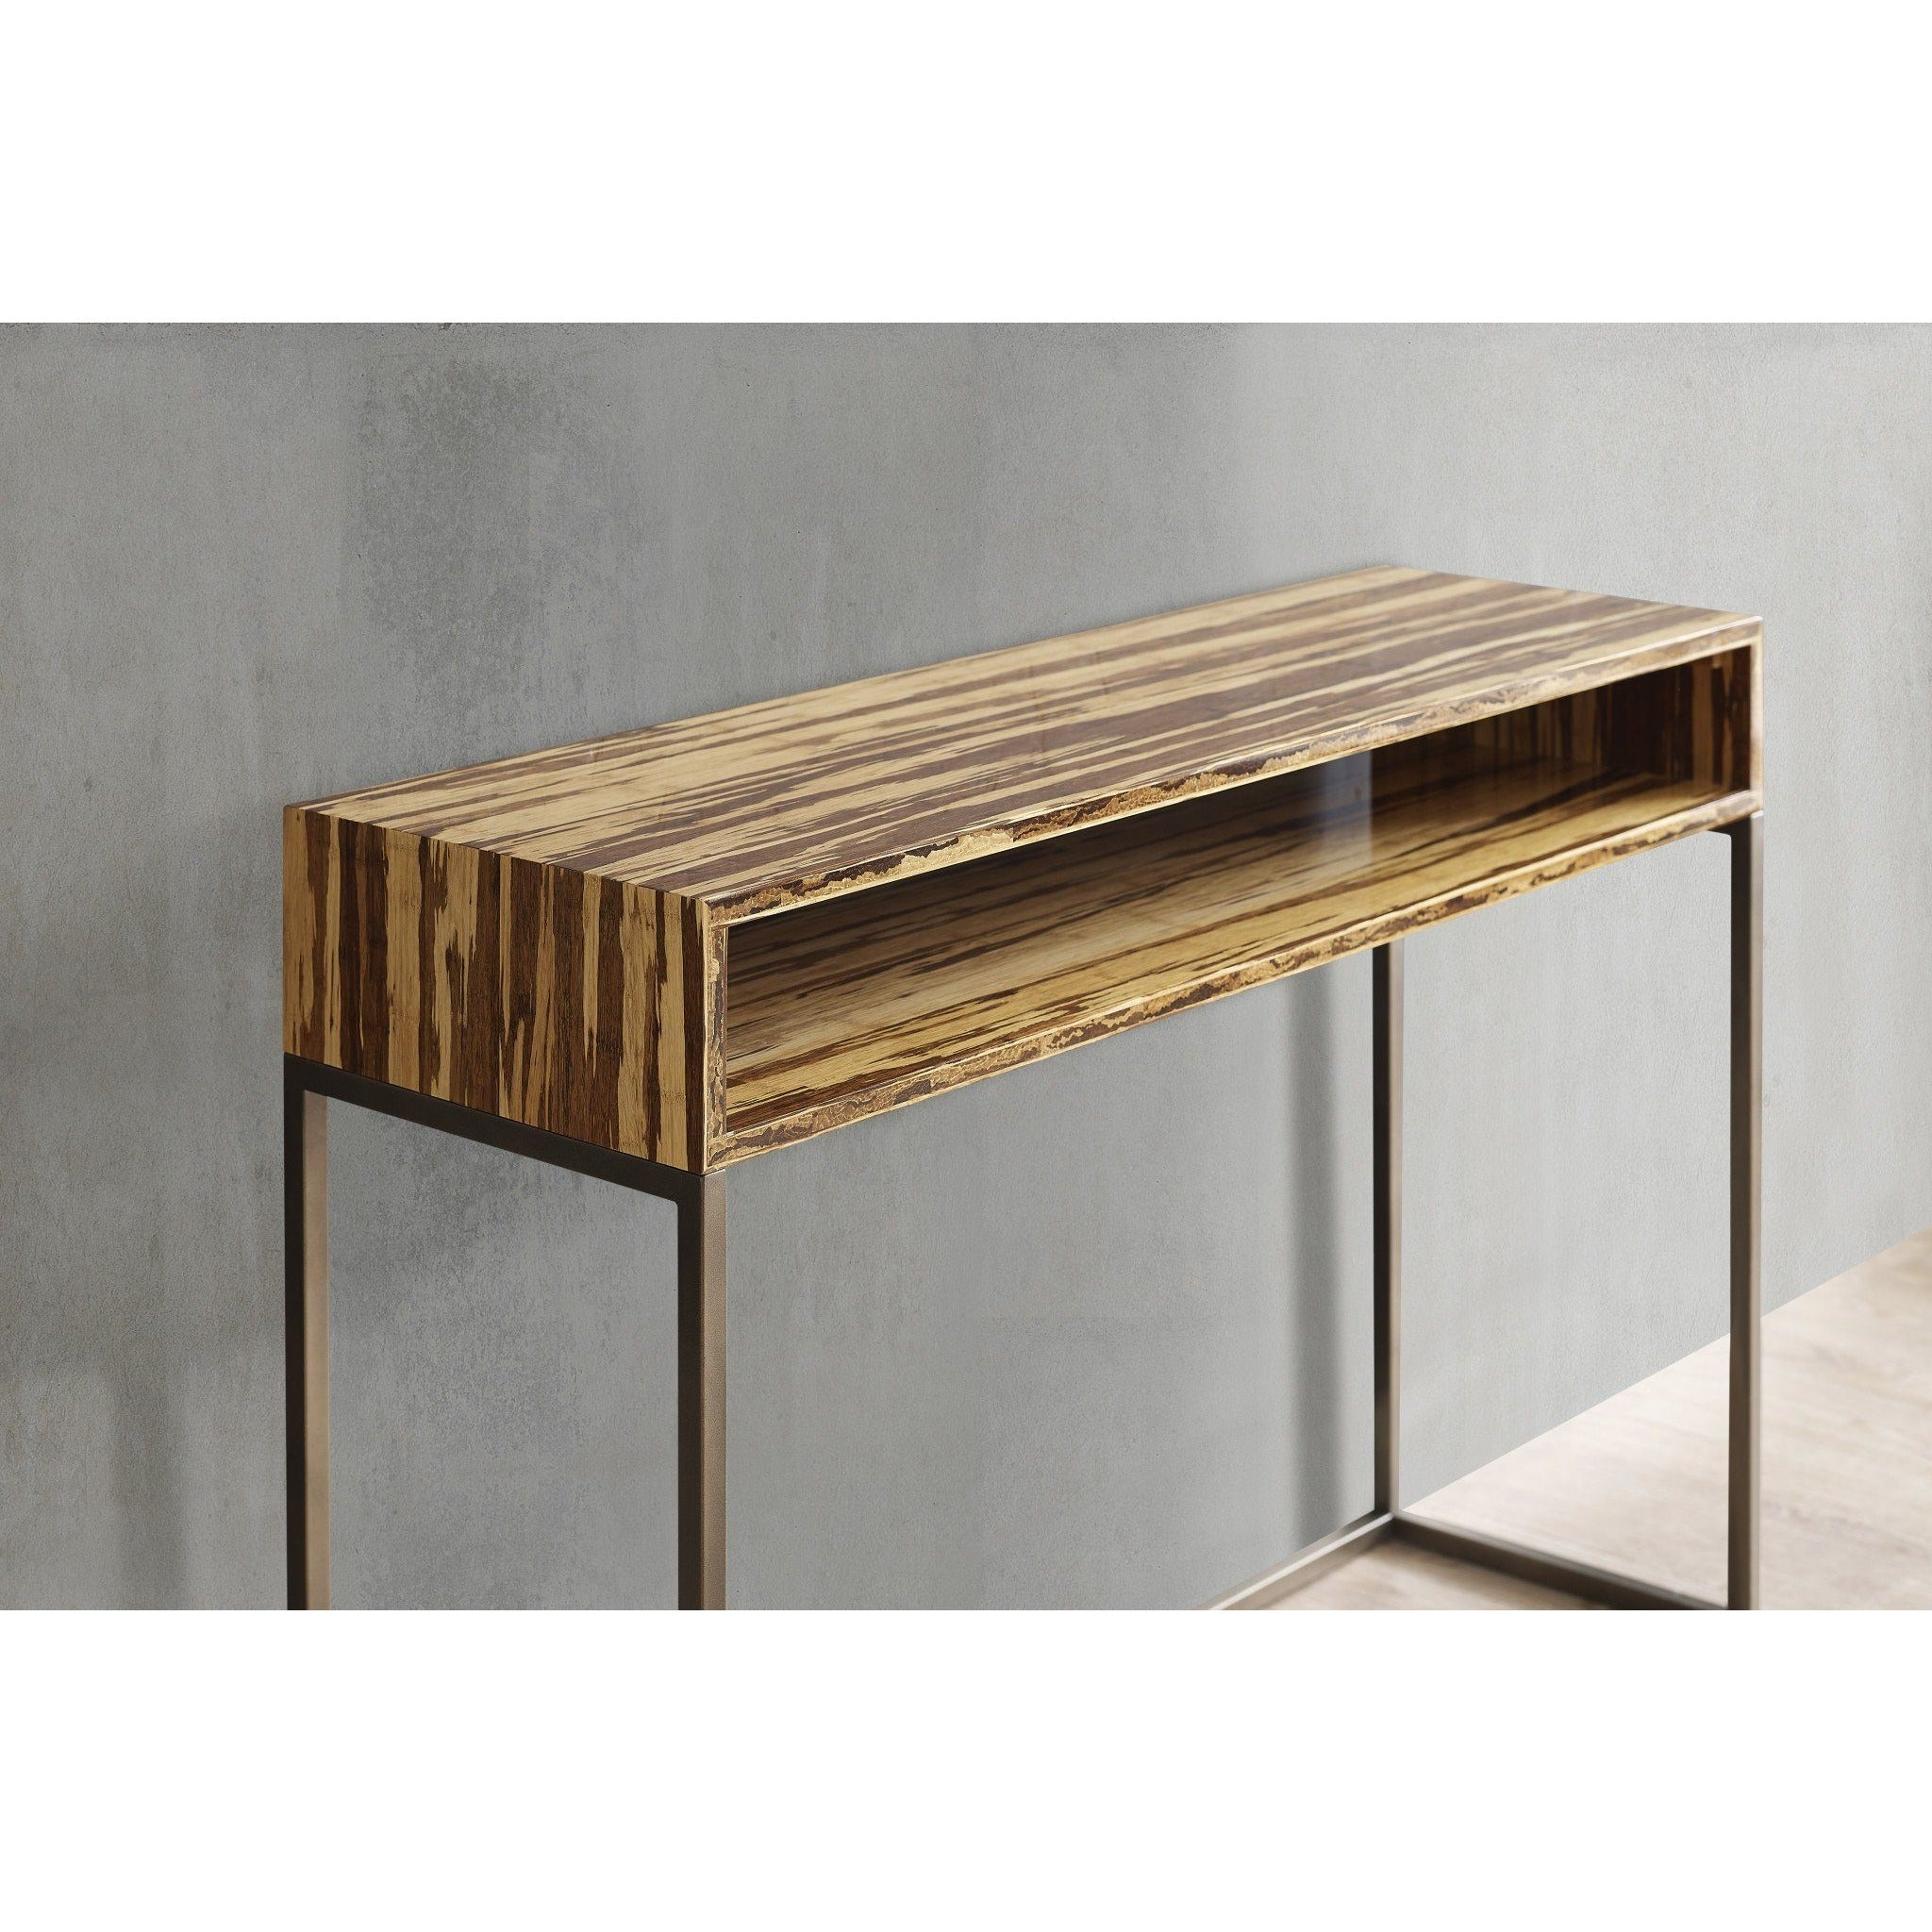 becca stool bamboo furniture modern bamboo. Modern Bamboo Furniture Greenington Toronto Solid Exotic Tiger Console Table G0057t Becca Stool